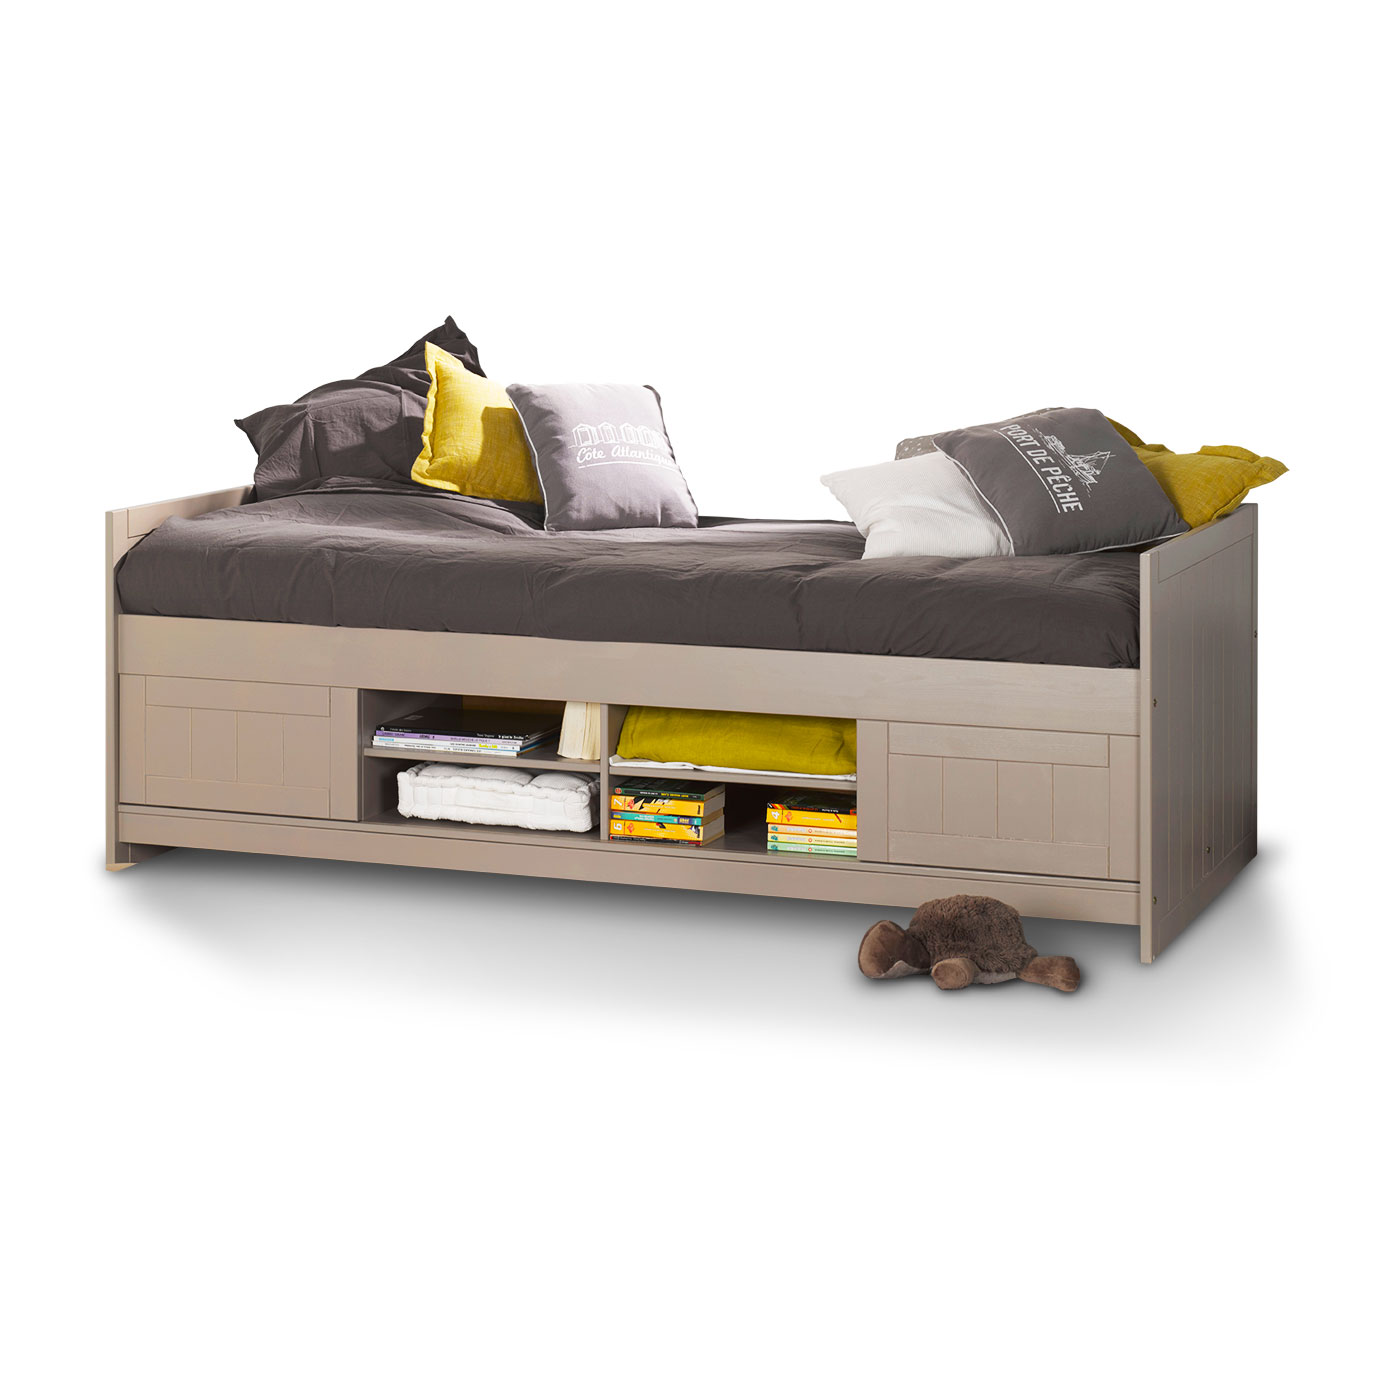 lit junior avec rangements teddy lin idkid 39 s. Black Bedroom Furniture Sets. Home Design Ideas